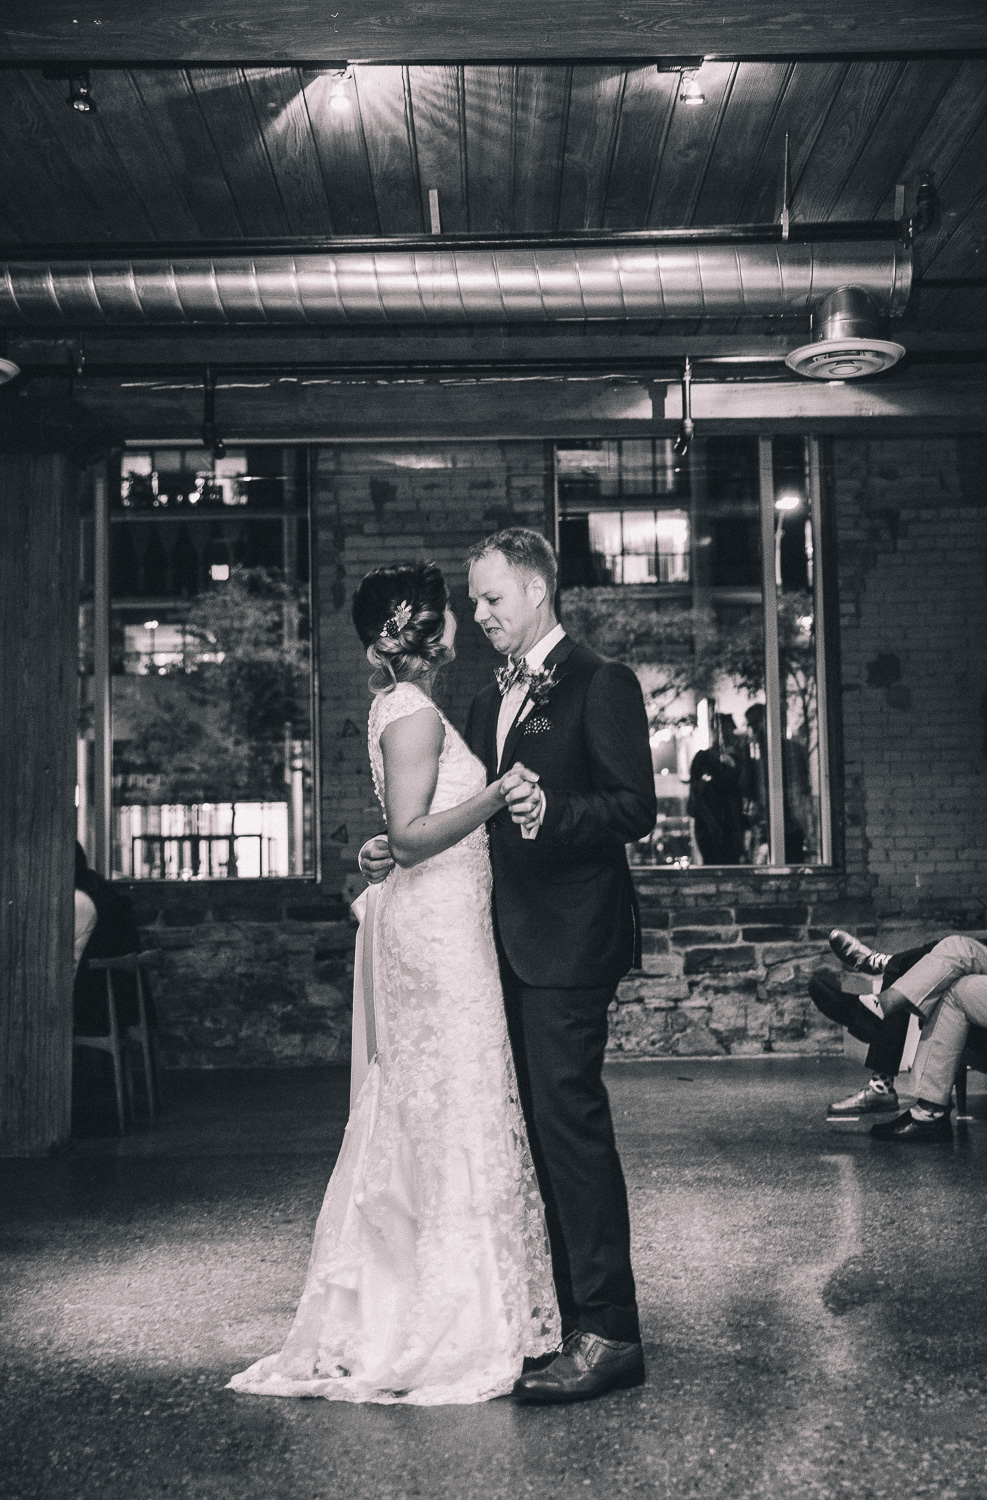 Interracial couple share their first dance during their summer wedding at Hotel Ocho